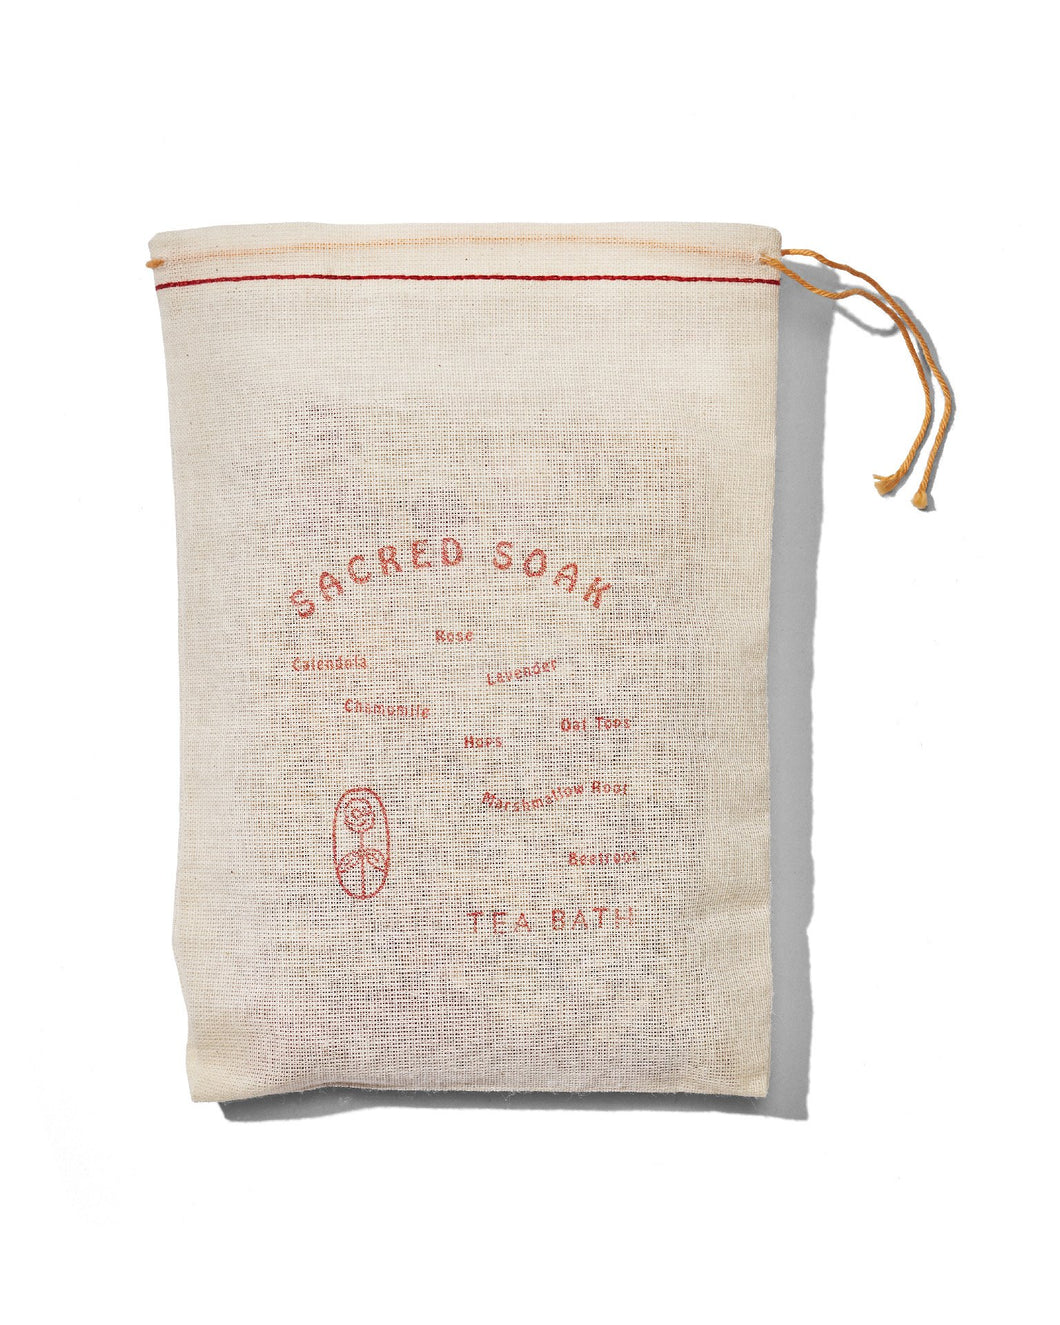 SACRED BATH SOAK